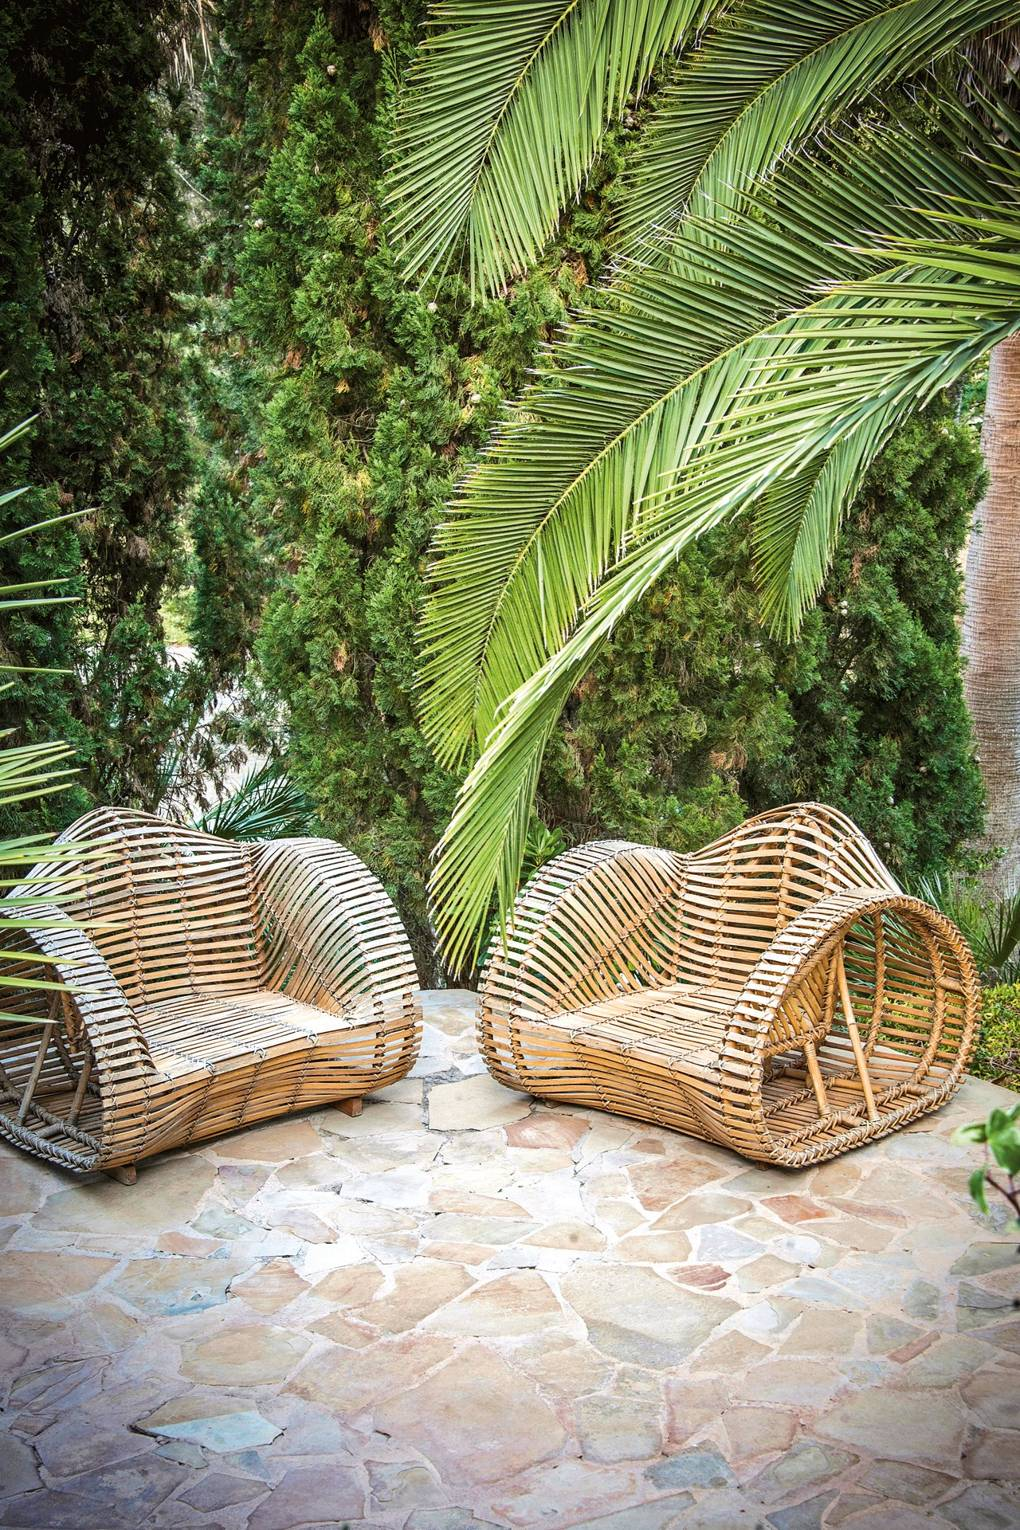 D Antoni Rattan Srl.The Best Hotels Restaurants Villas And Beach Clubs In